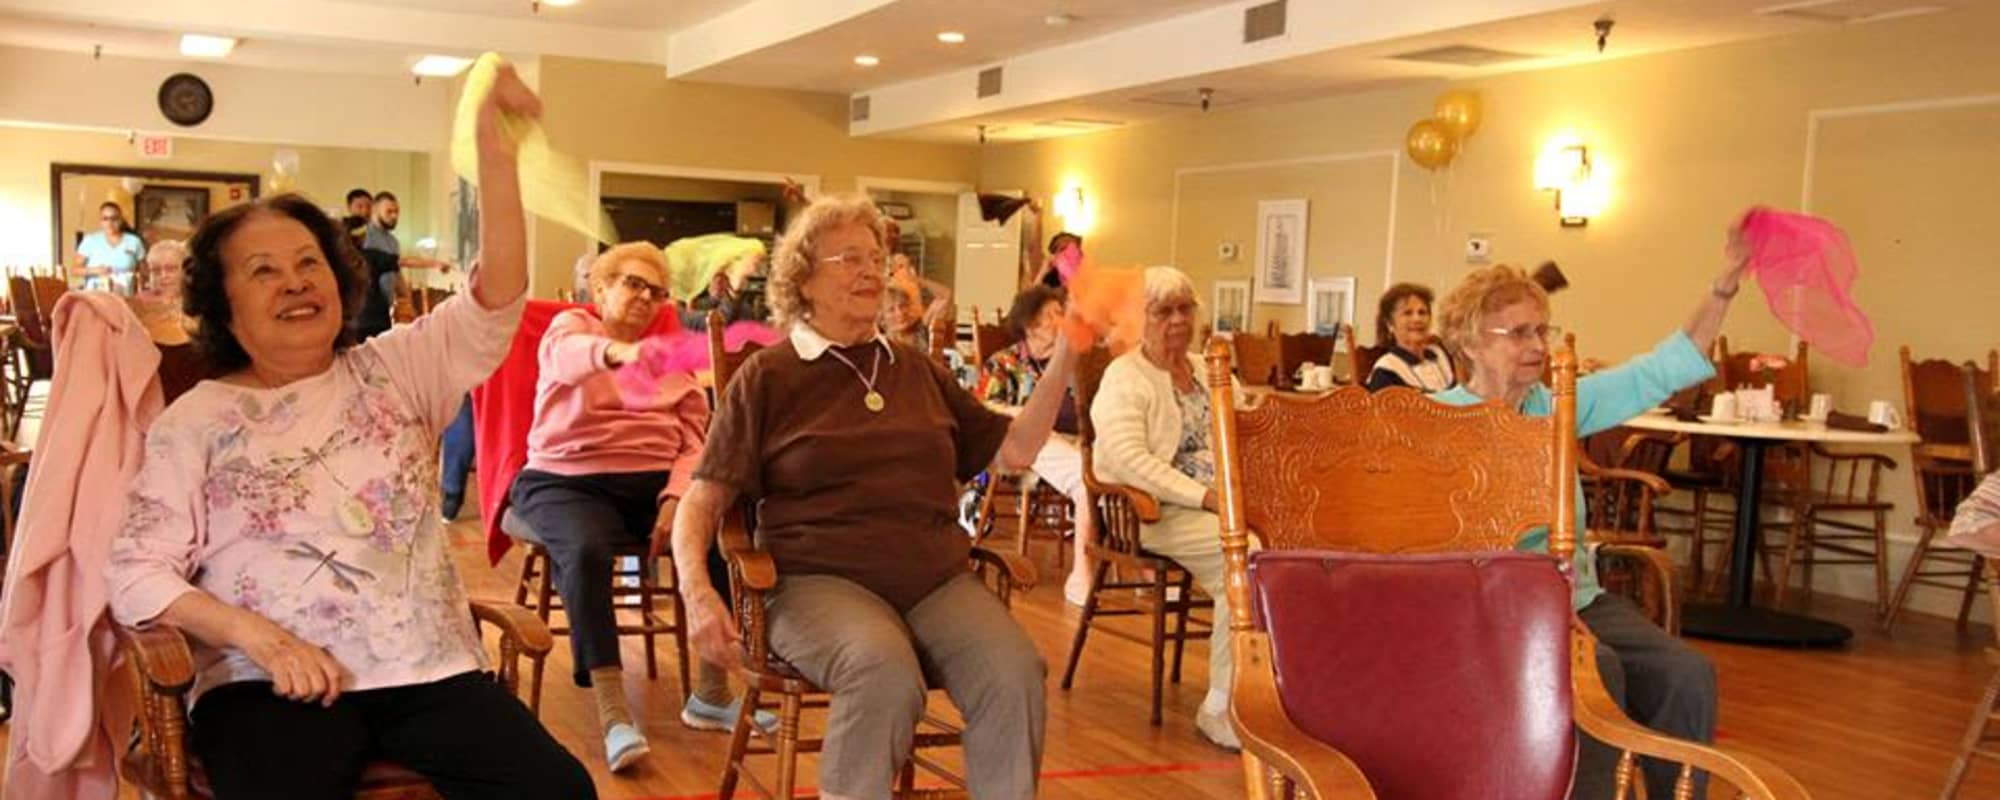 Seniors dancing at The Montera in La Mesa, California